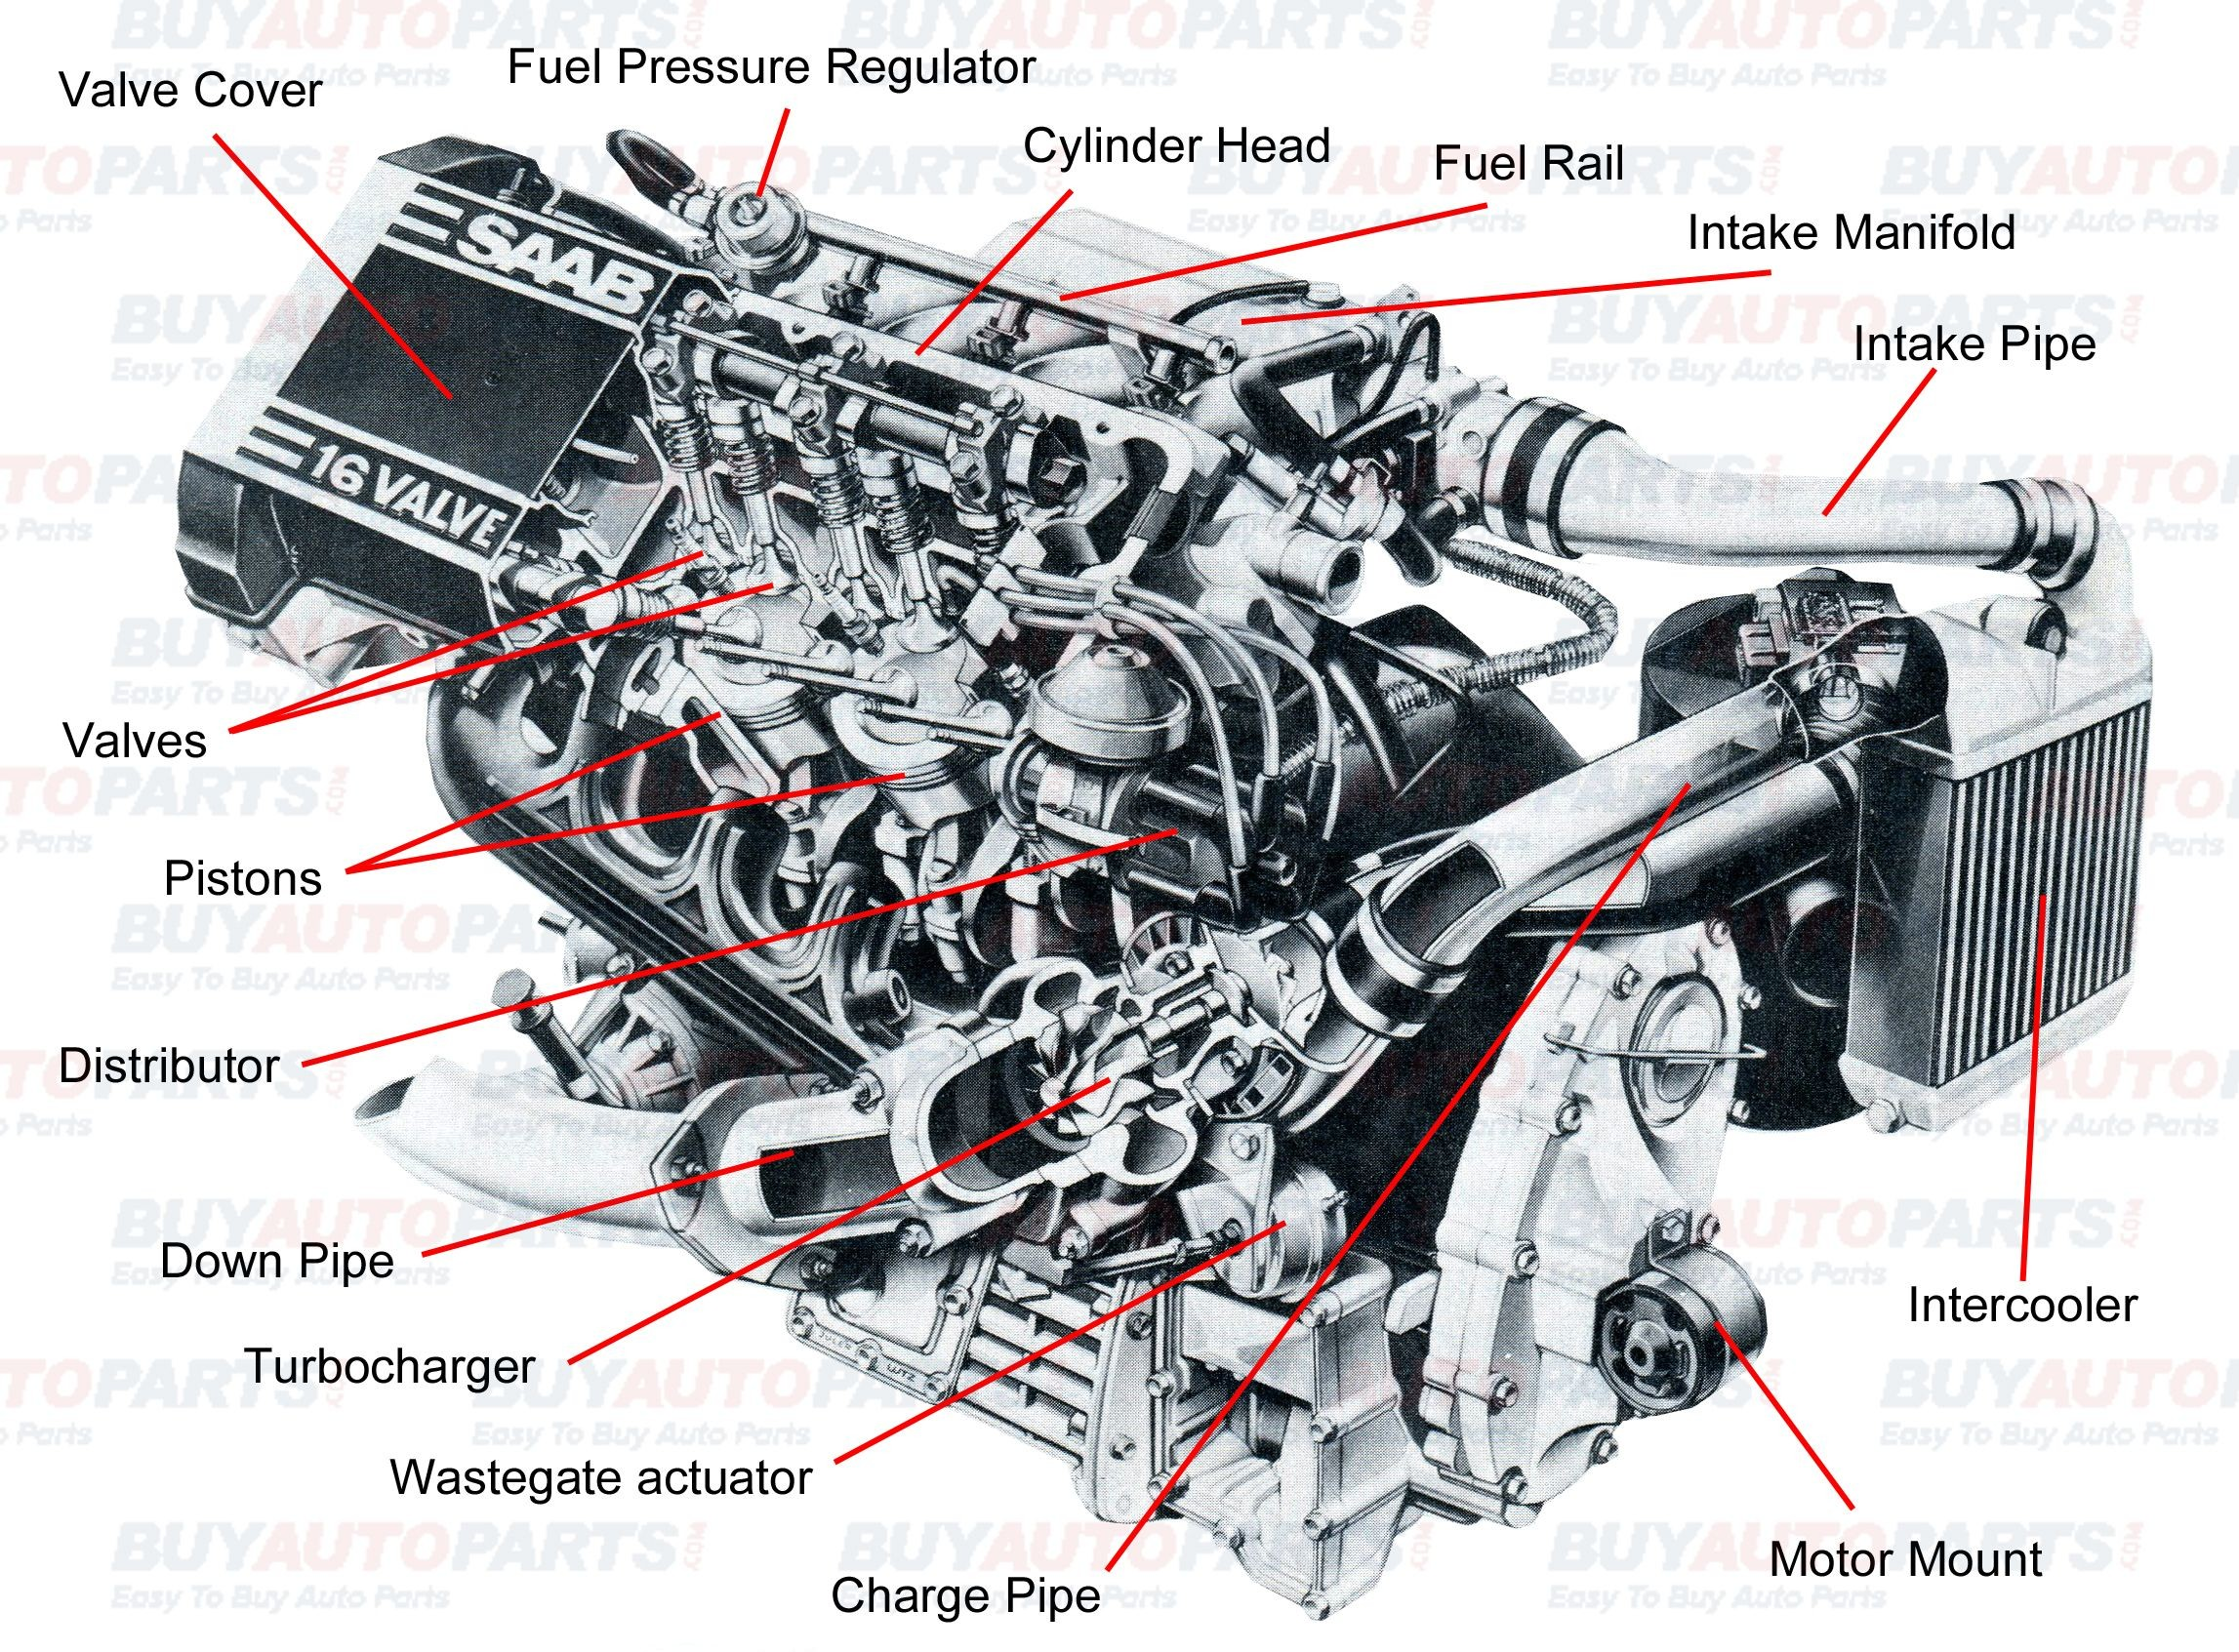 Basic Diagram Of Car Parts All Internal Bustion Engines Have the Same Basic Ponents the Of Basic Diagram Of Car Parts